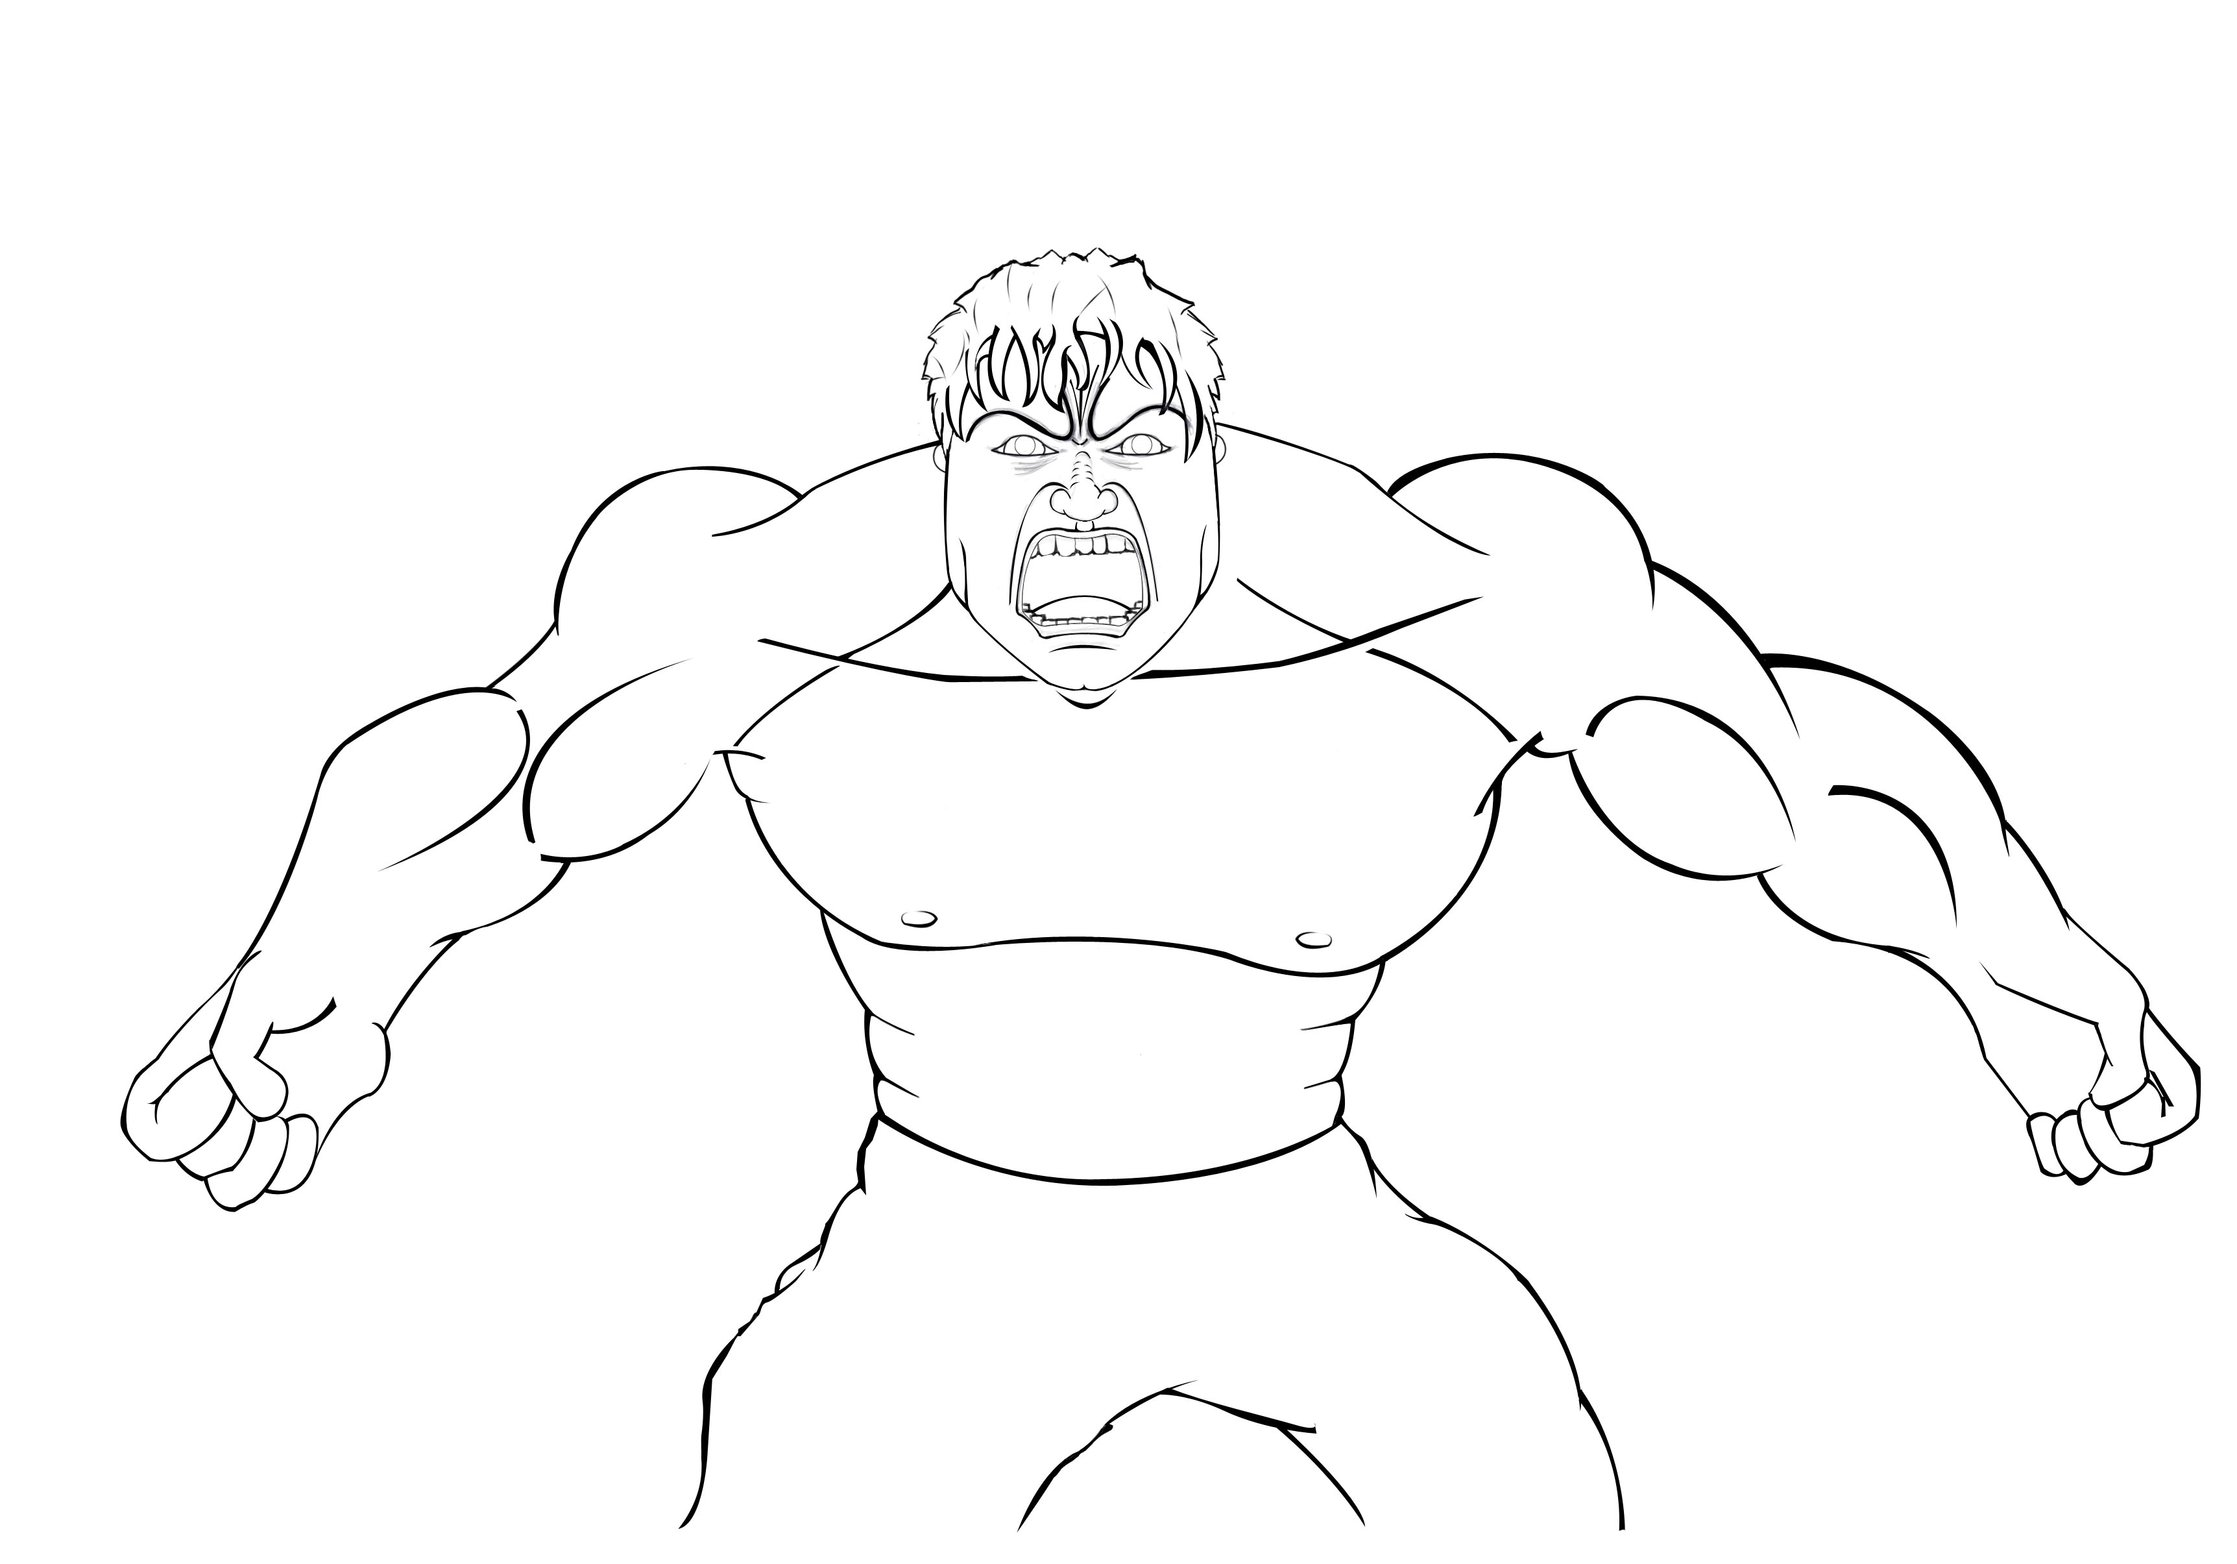 hulk outline for coloring hulk drawing face at getdrawings free download for hulk coloring outline